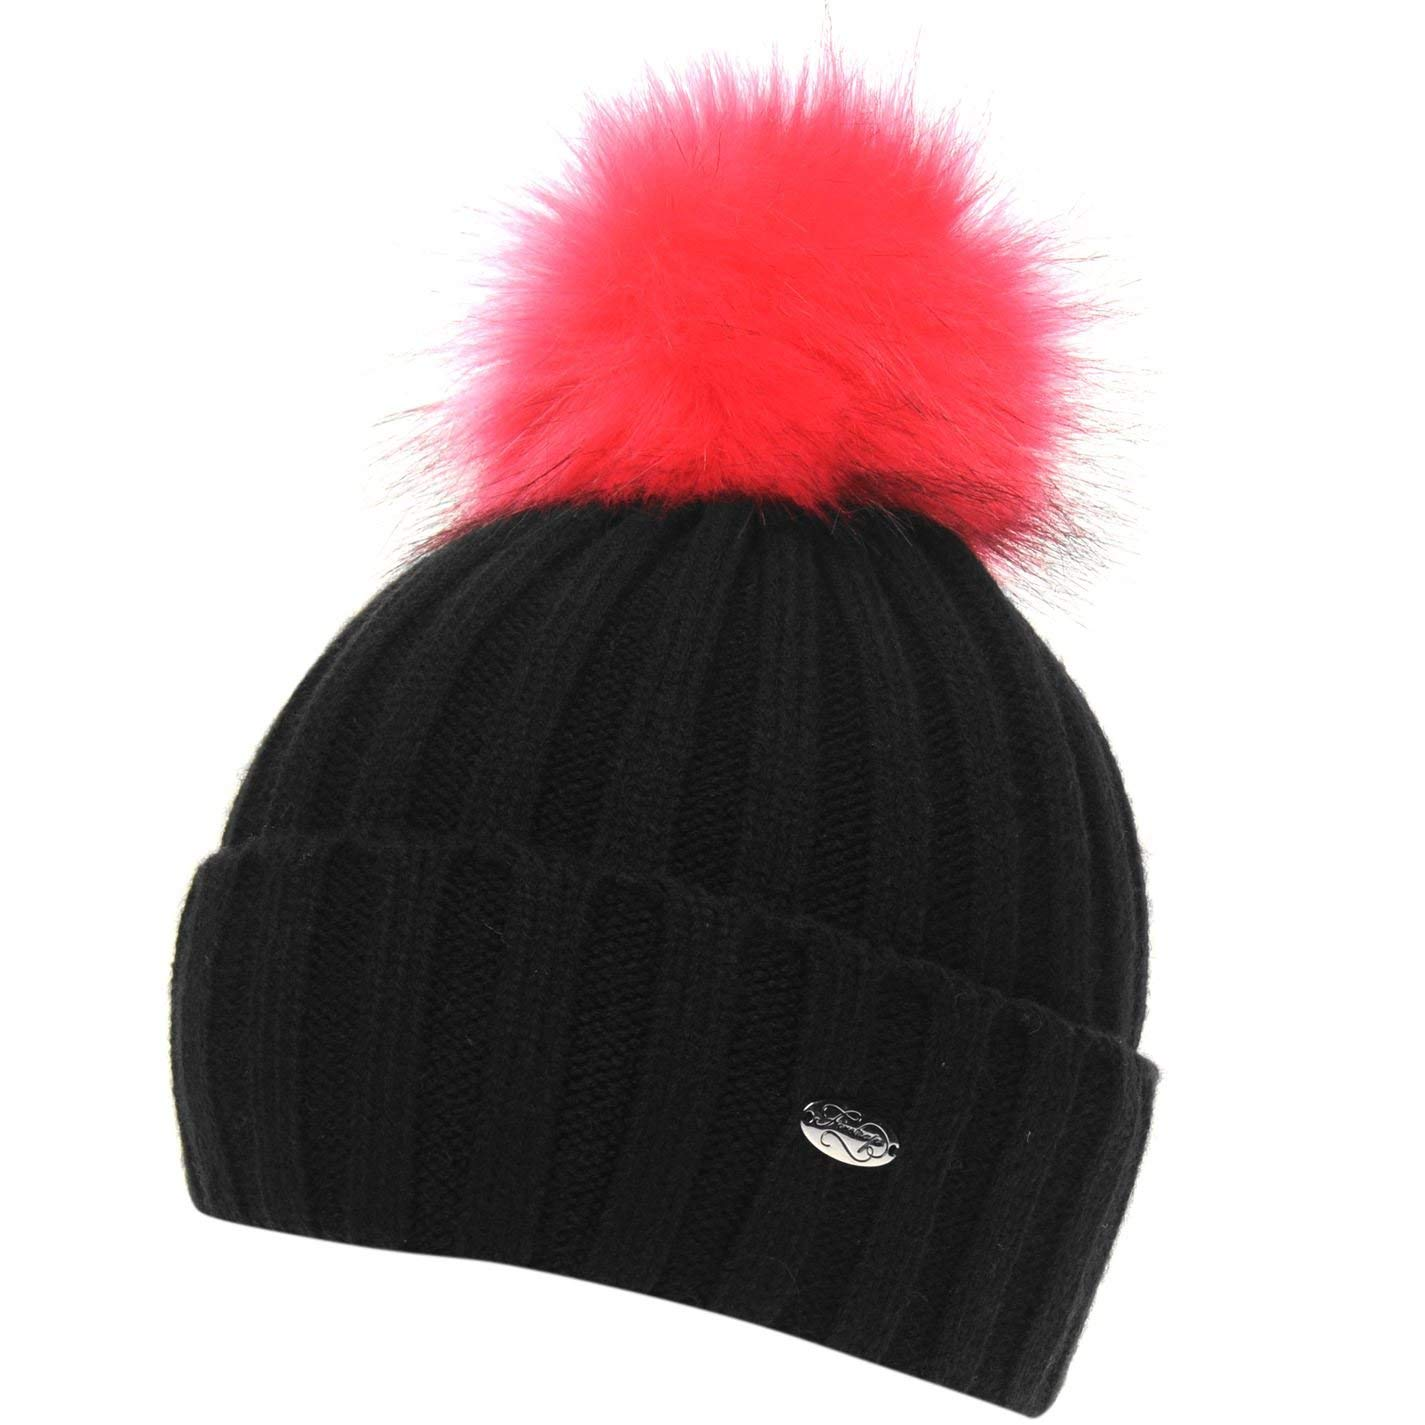 481f7c3d511 Get Quotations · Firetrap Womens Etna Beanie Hat Bobble Warm Faux Fur